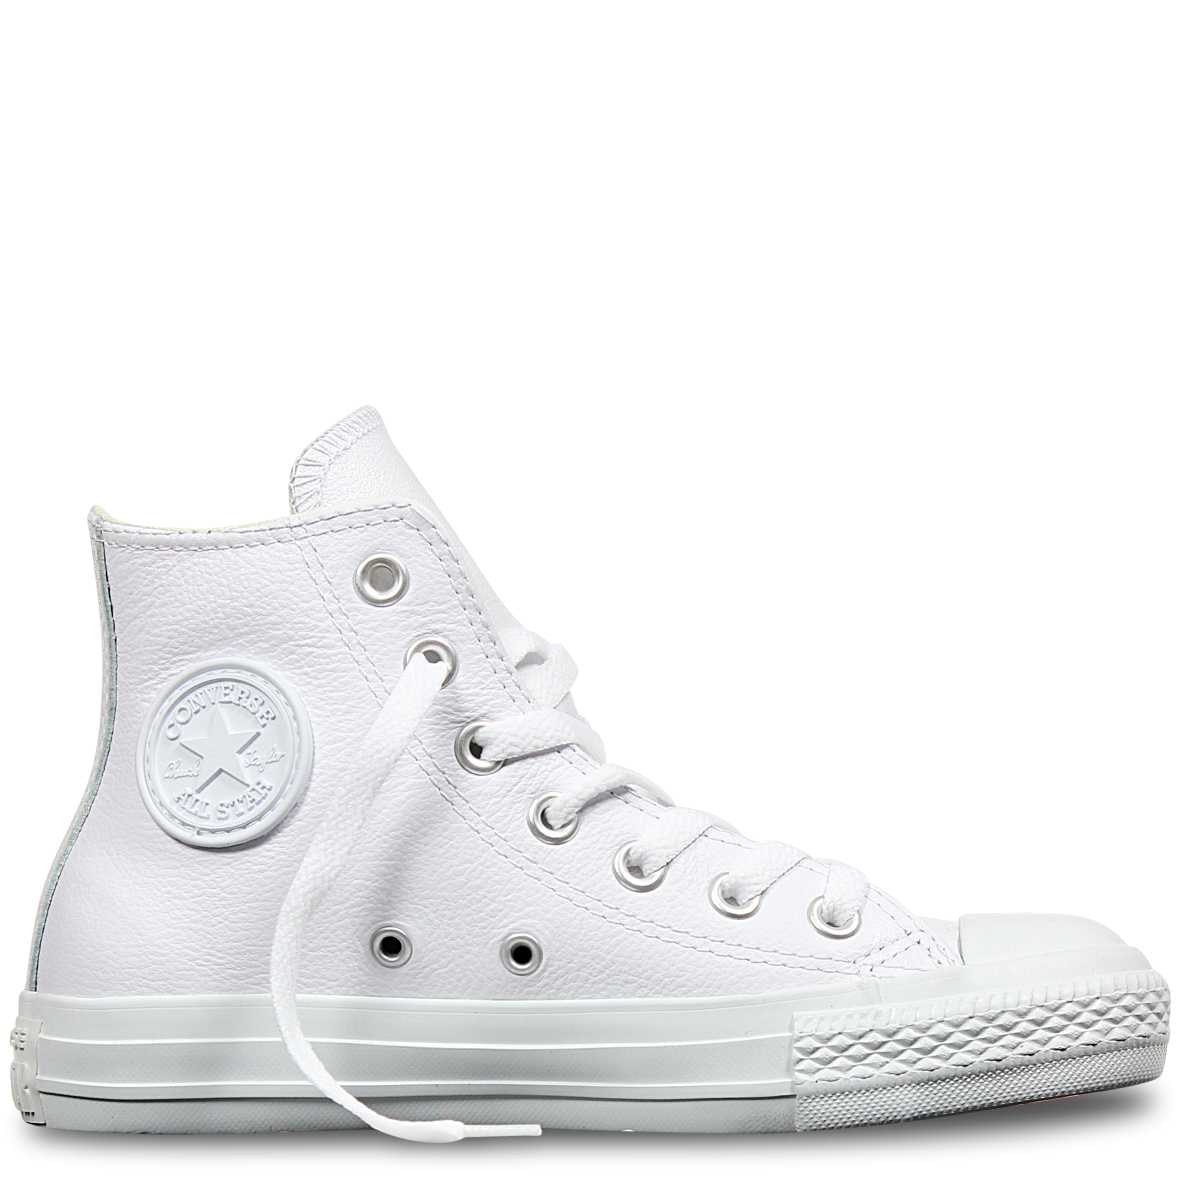 Chuck Taylor All Star Leather High Top White  fbc9c89c7577